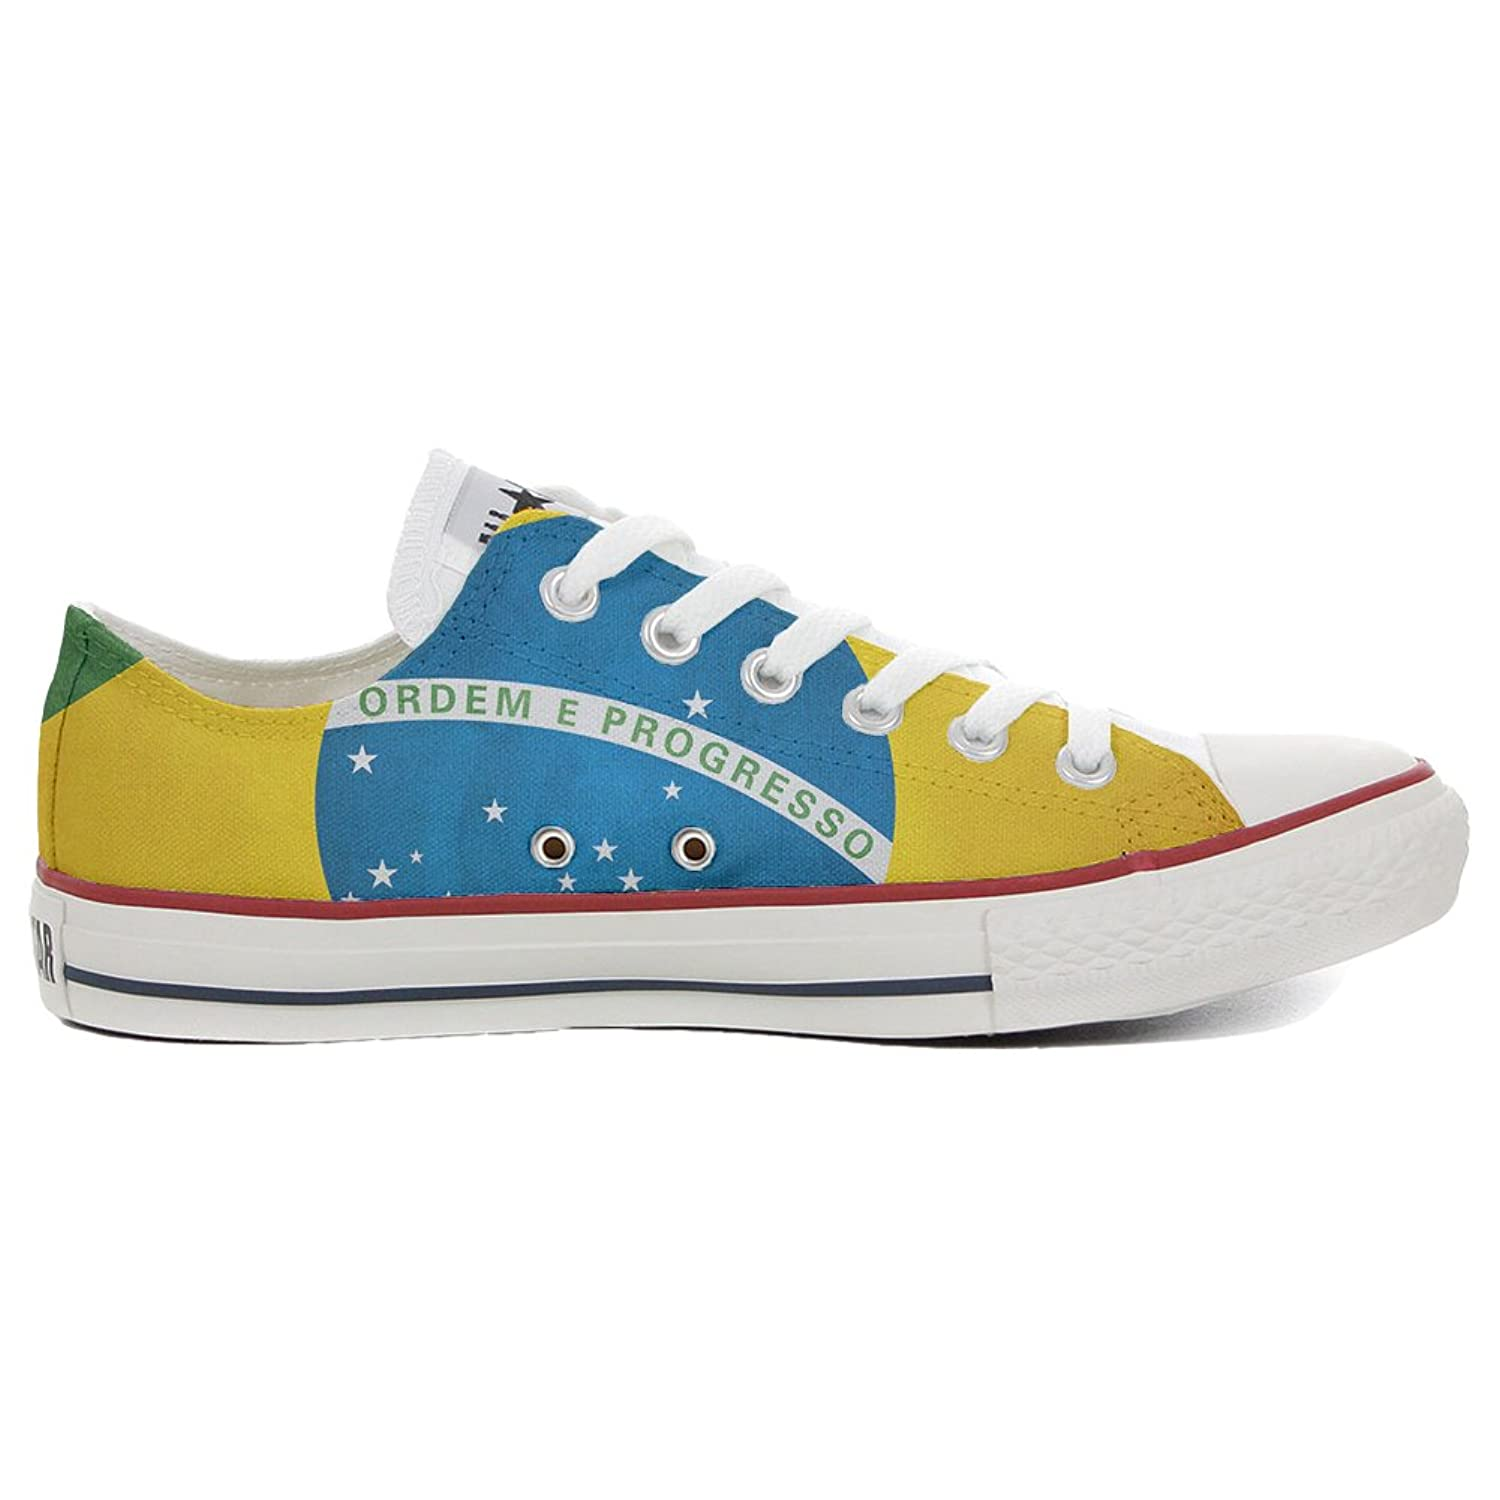 Converse All Star Low Customized Unisex Personalisierte Schuhe (Handwerk Schuhe) Slim Brasilien  37 EU